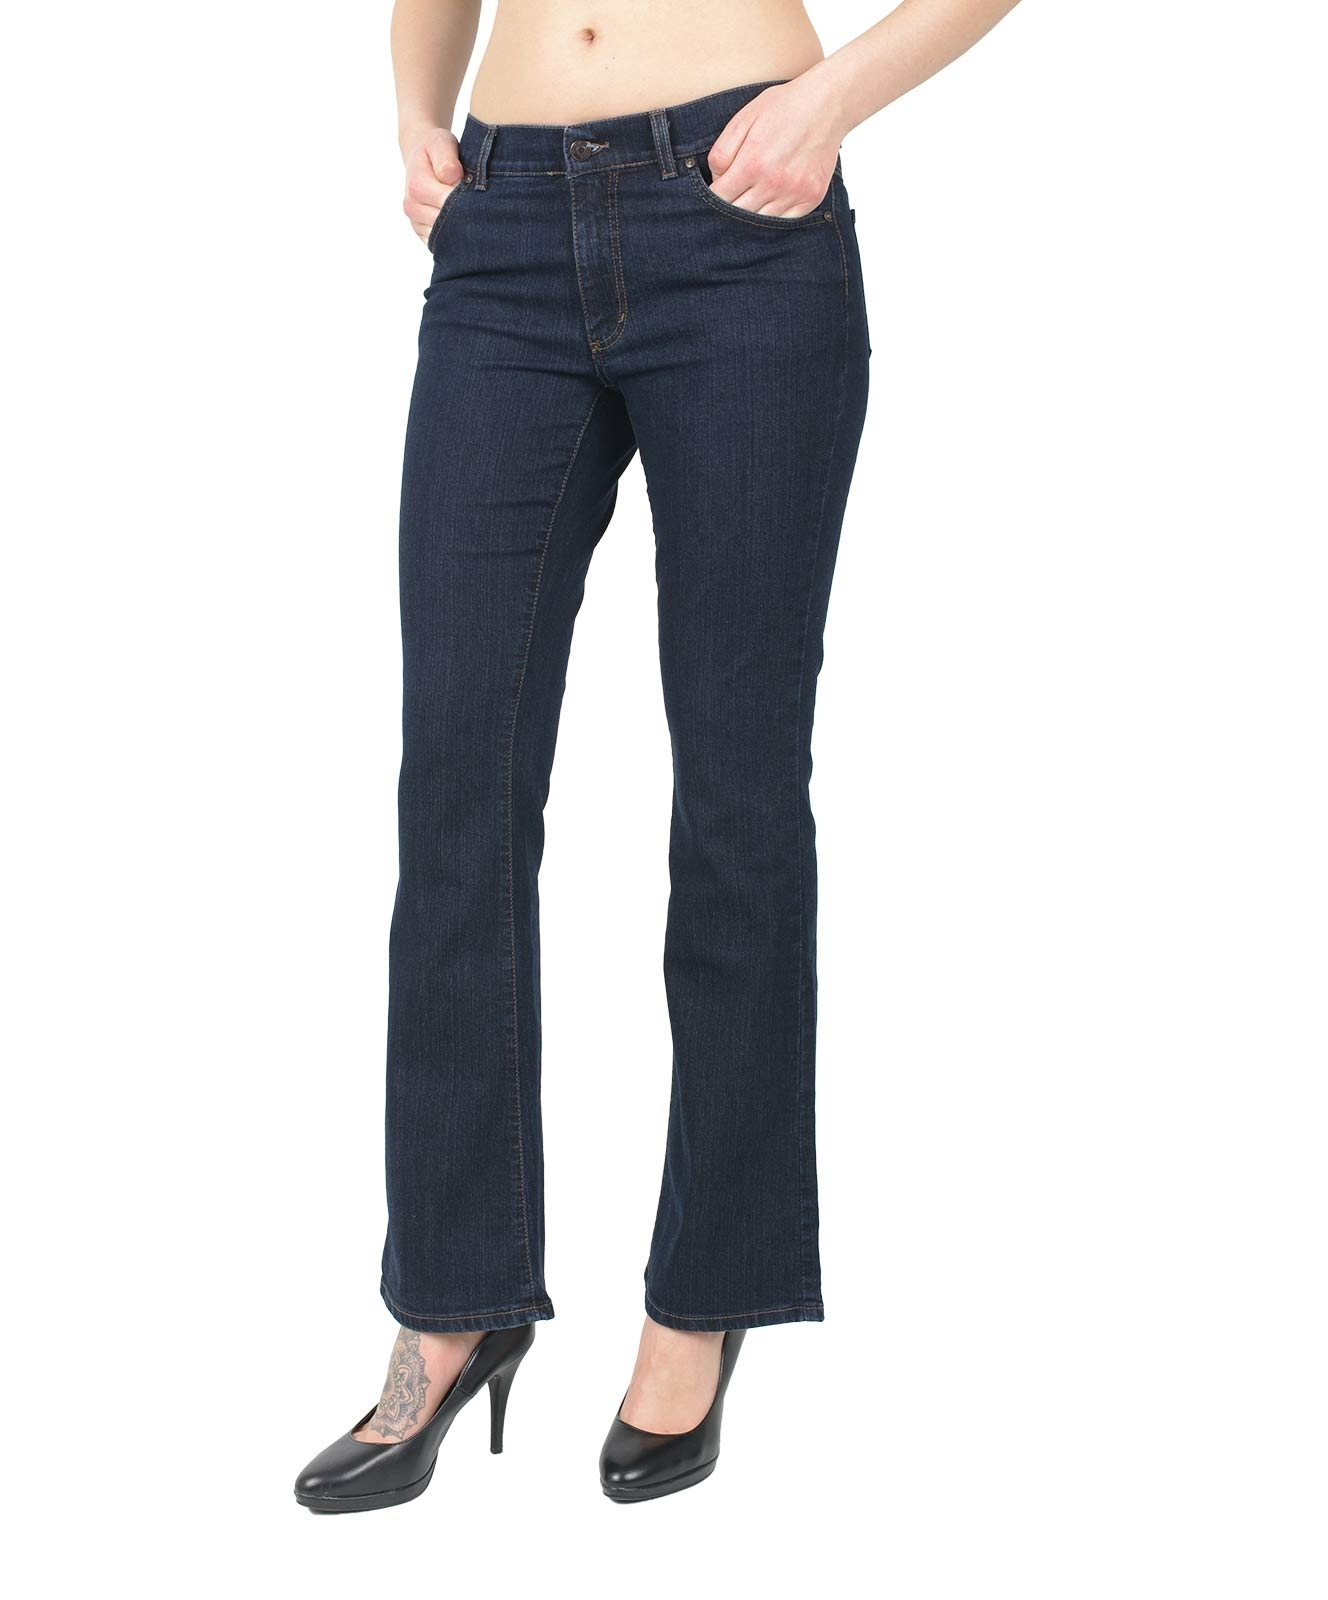 Hosen - Angels Bootcut Jeans Luci in Dark Washed  - Onlineshop Jeans Meile